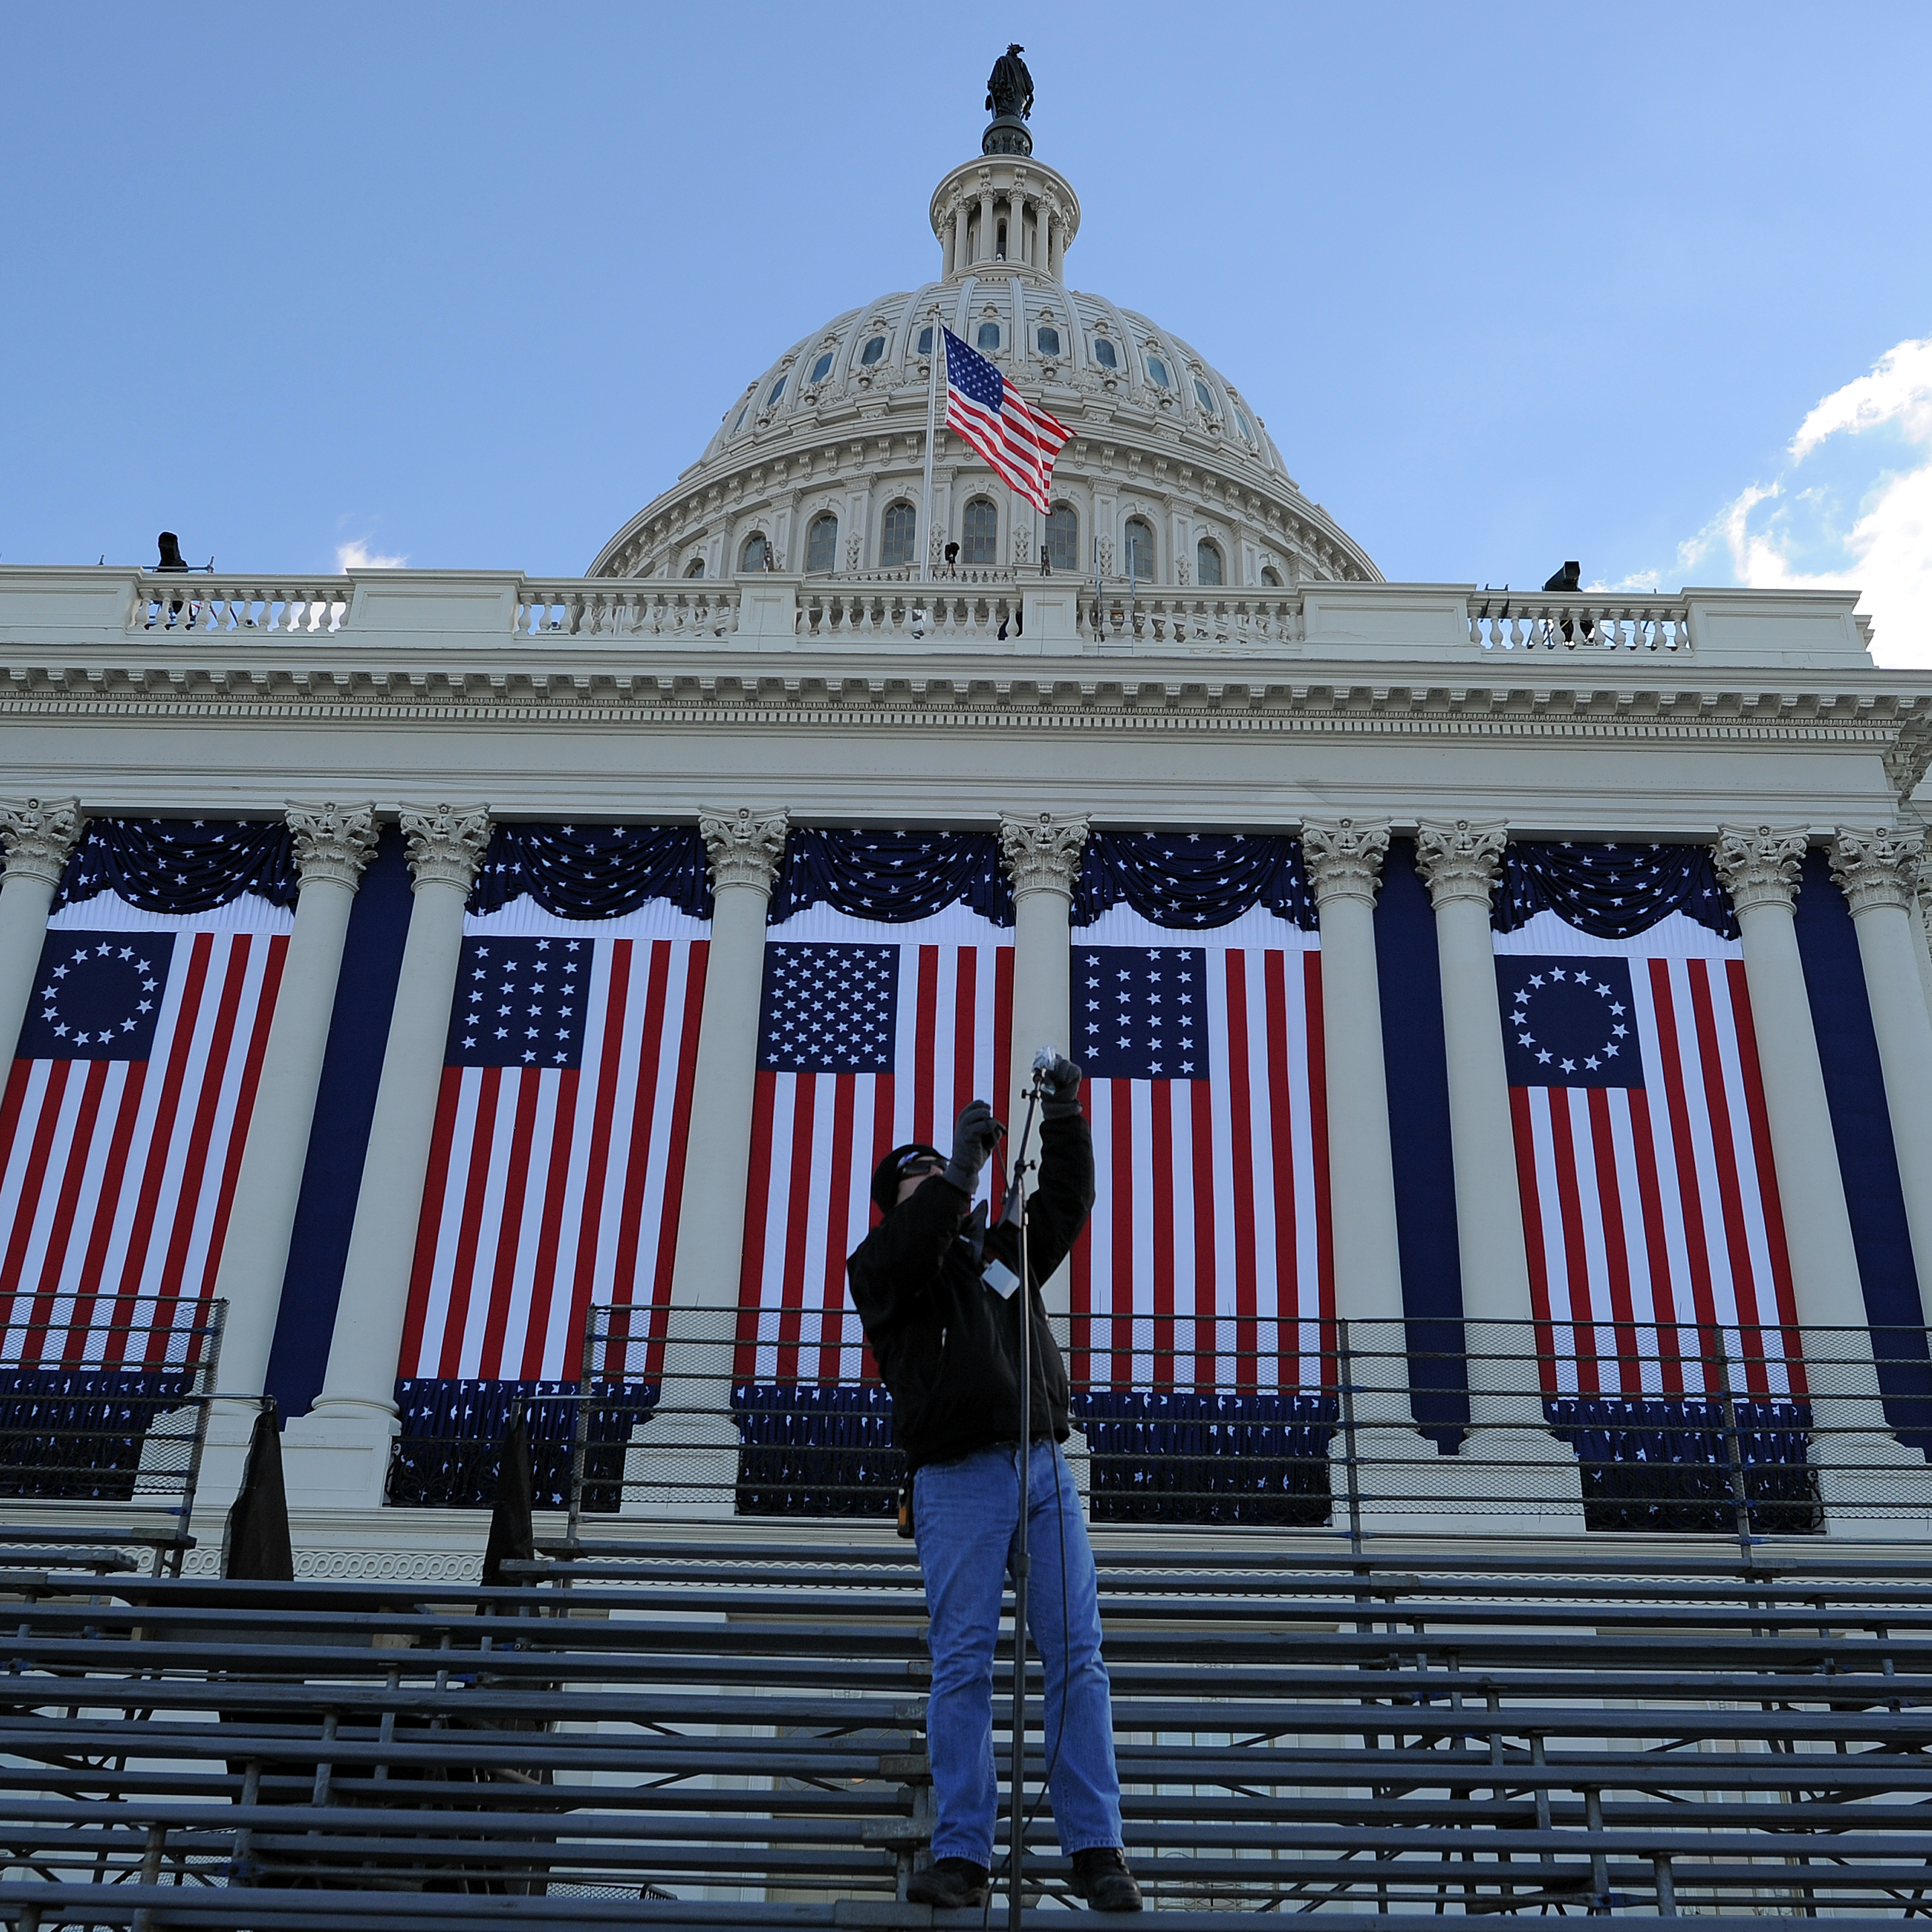 A worker sets up microphones at the U.S. Capitol as preparations continue for the second inauguration of President Obama on Friday.